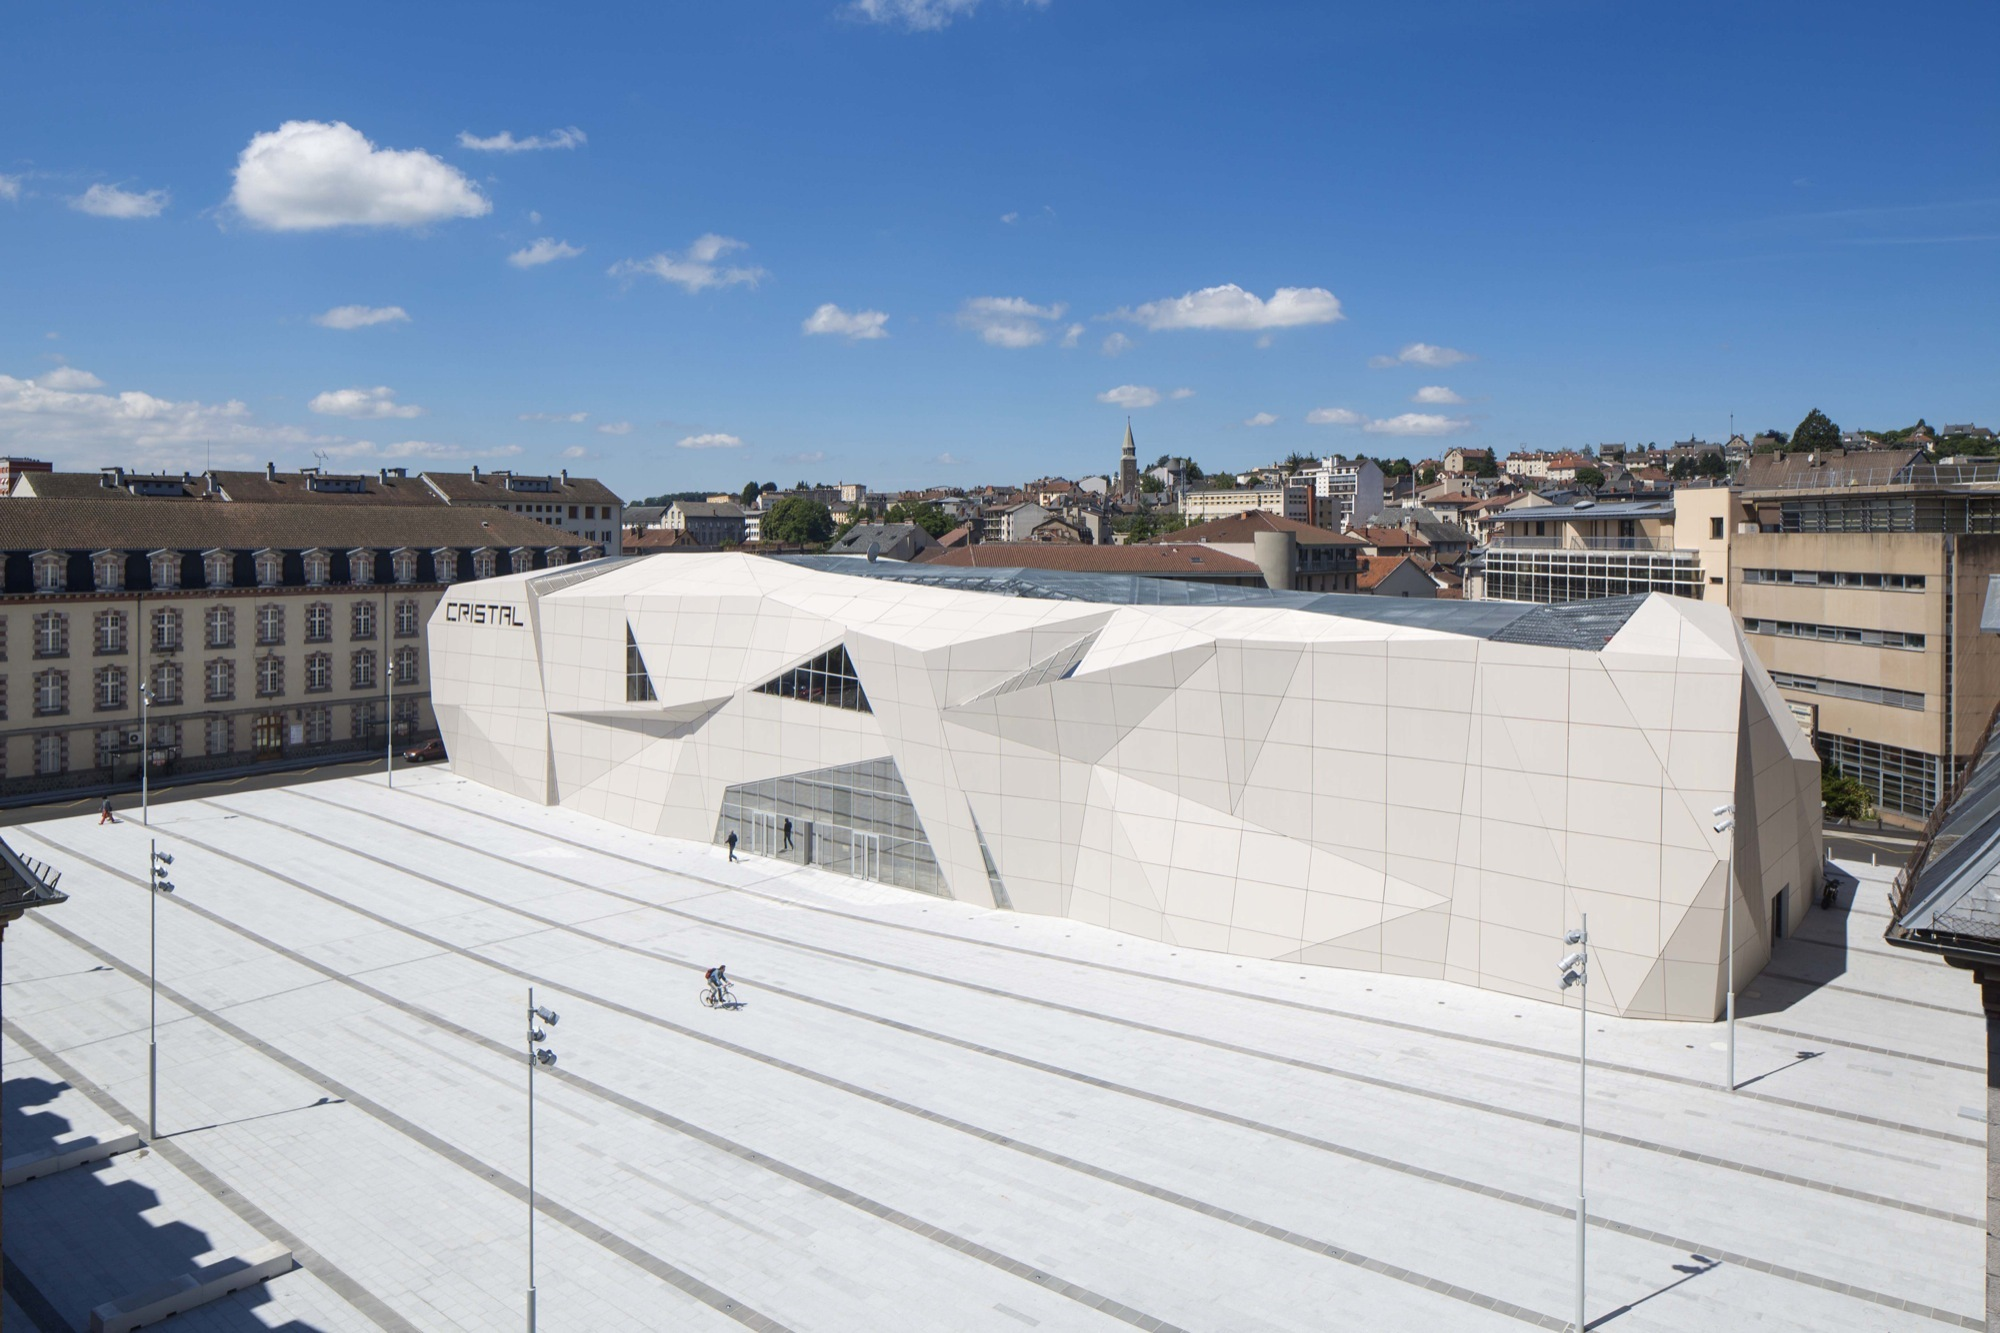 Architecte Aurillac Le Cristal Cinema And Michel Crespin Square Linéaire A Archdaily